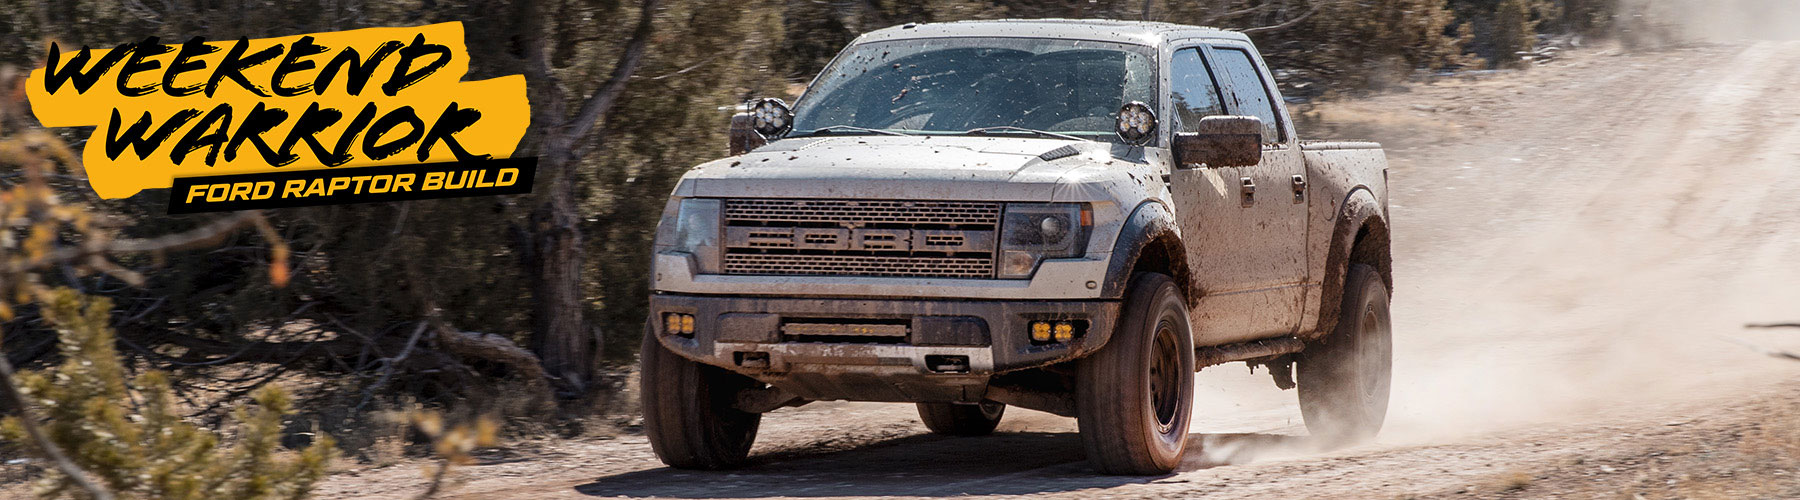 Stage 3's 2013 Raptor Weekend Warriror Build